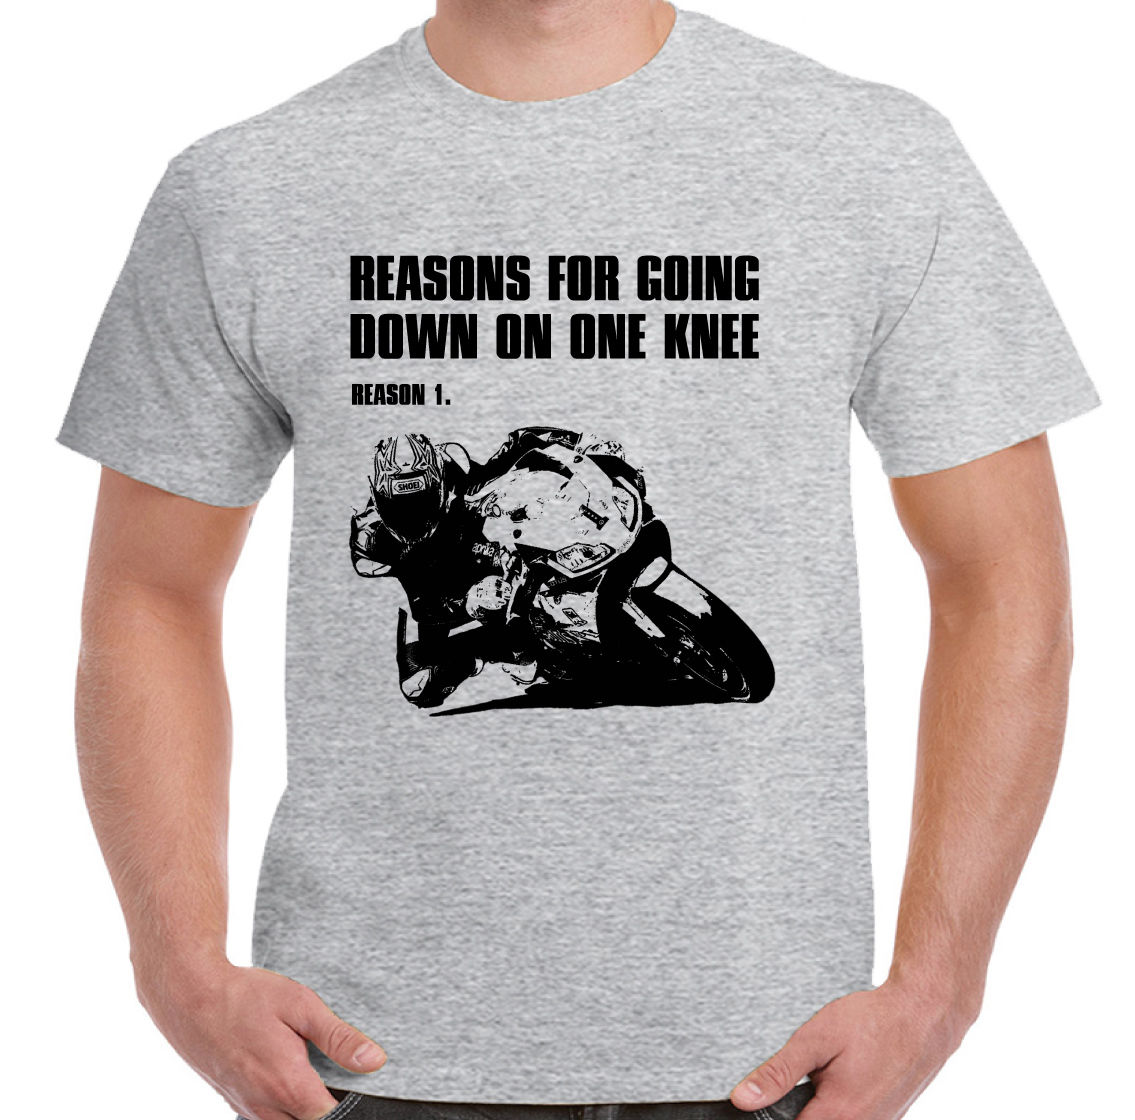 2018 Fashion Hot sale Reasons For Going Down On One Knee - Mens Funny Motorbike T-Shirt Superbike Biker Tee shirt